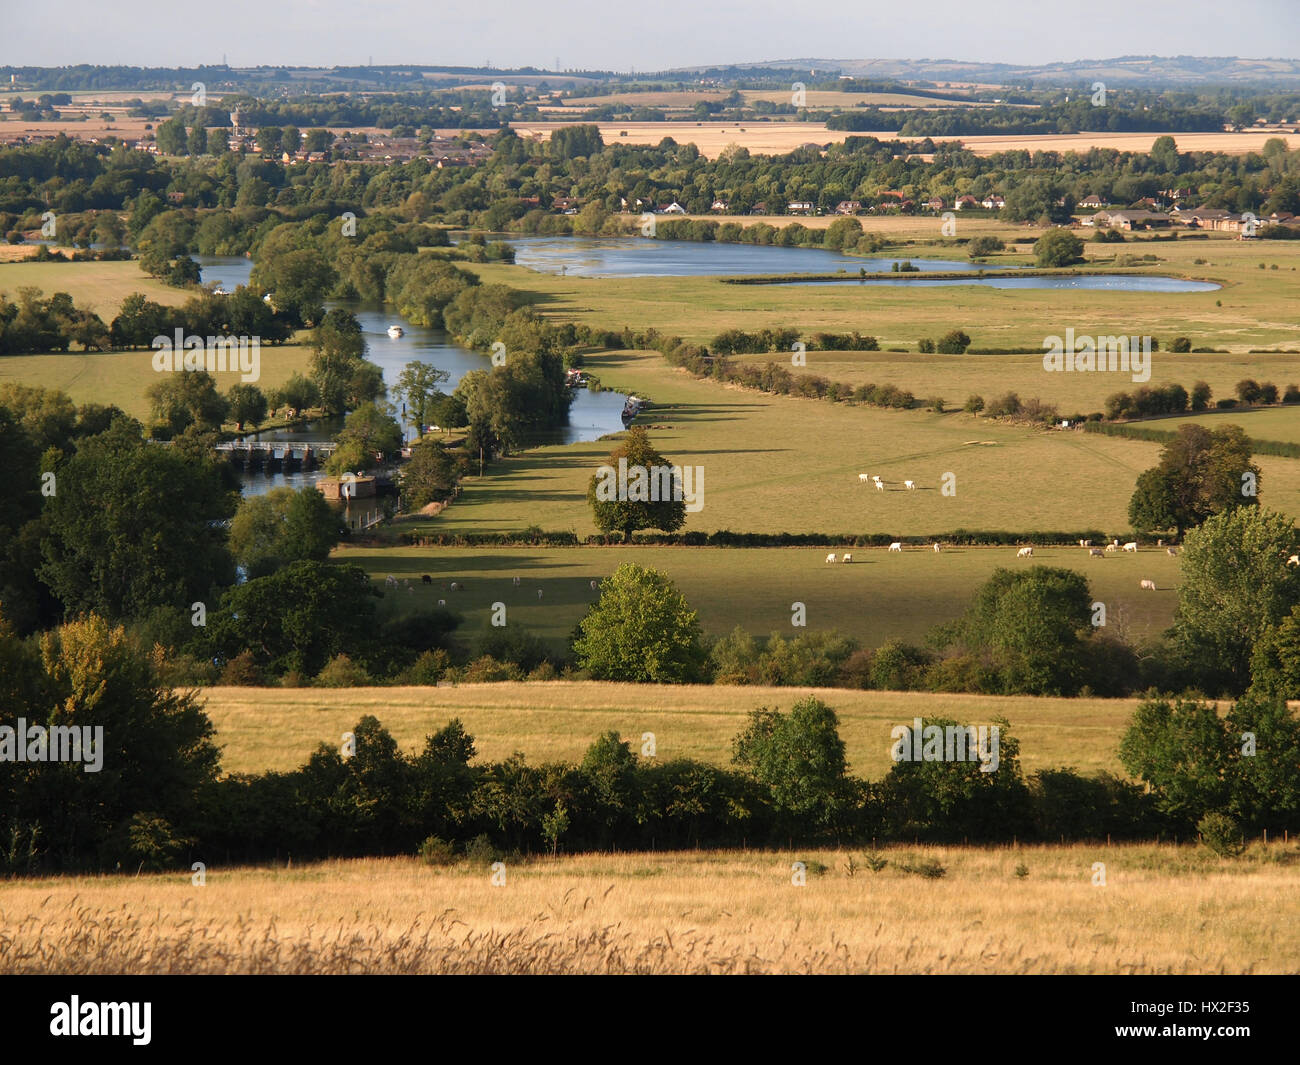 Dorchester on Thames in the distance showing the river and valley from Wittenham Clumps in Berkshire. Beauty spot - Stock Image